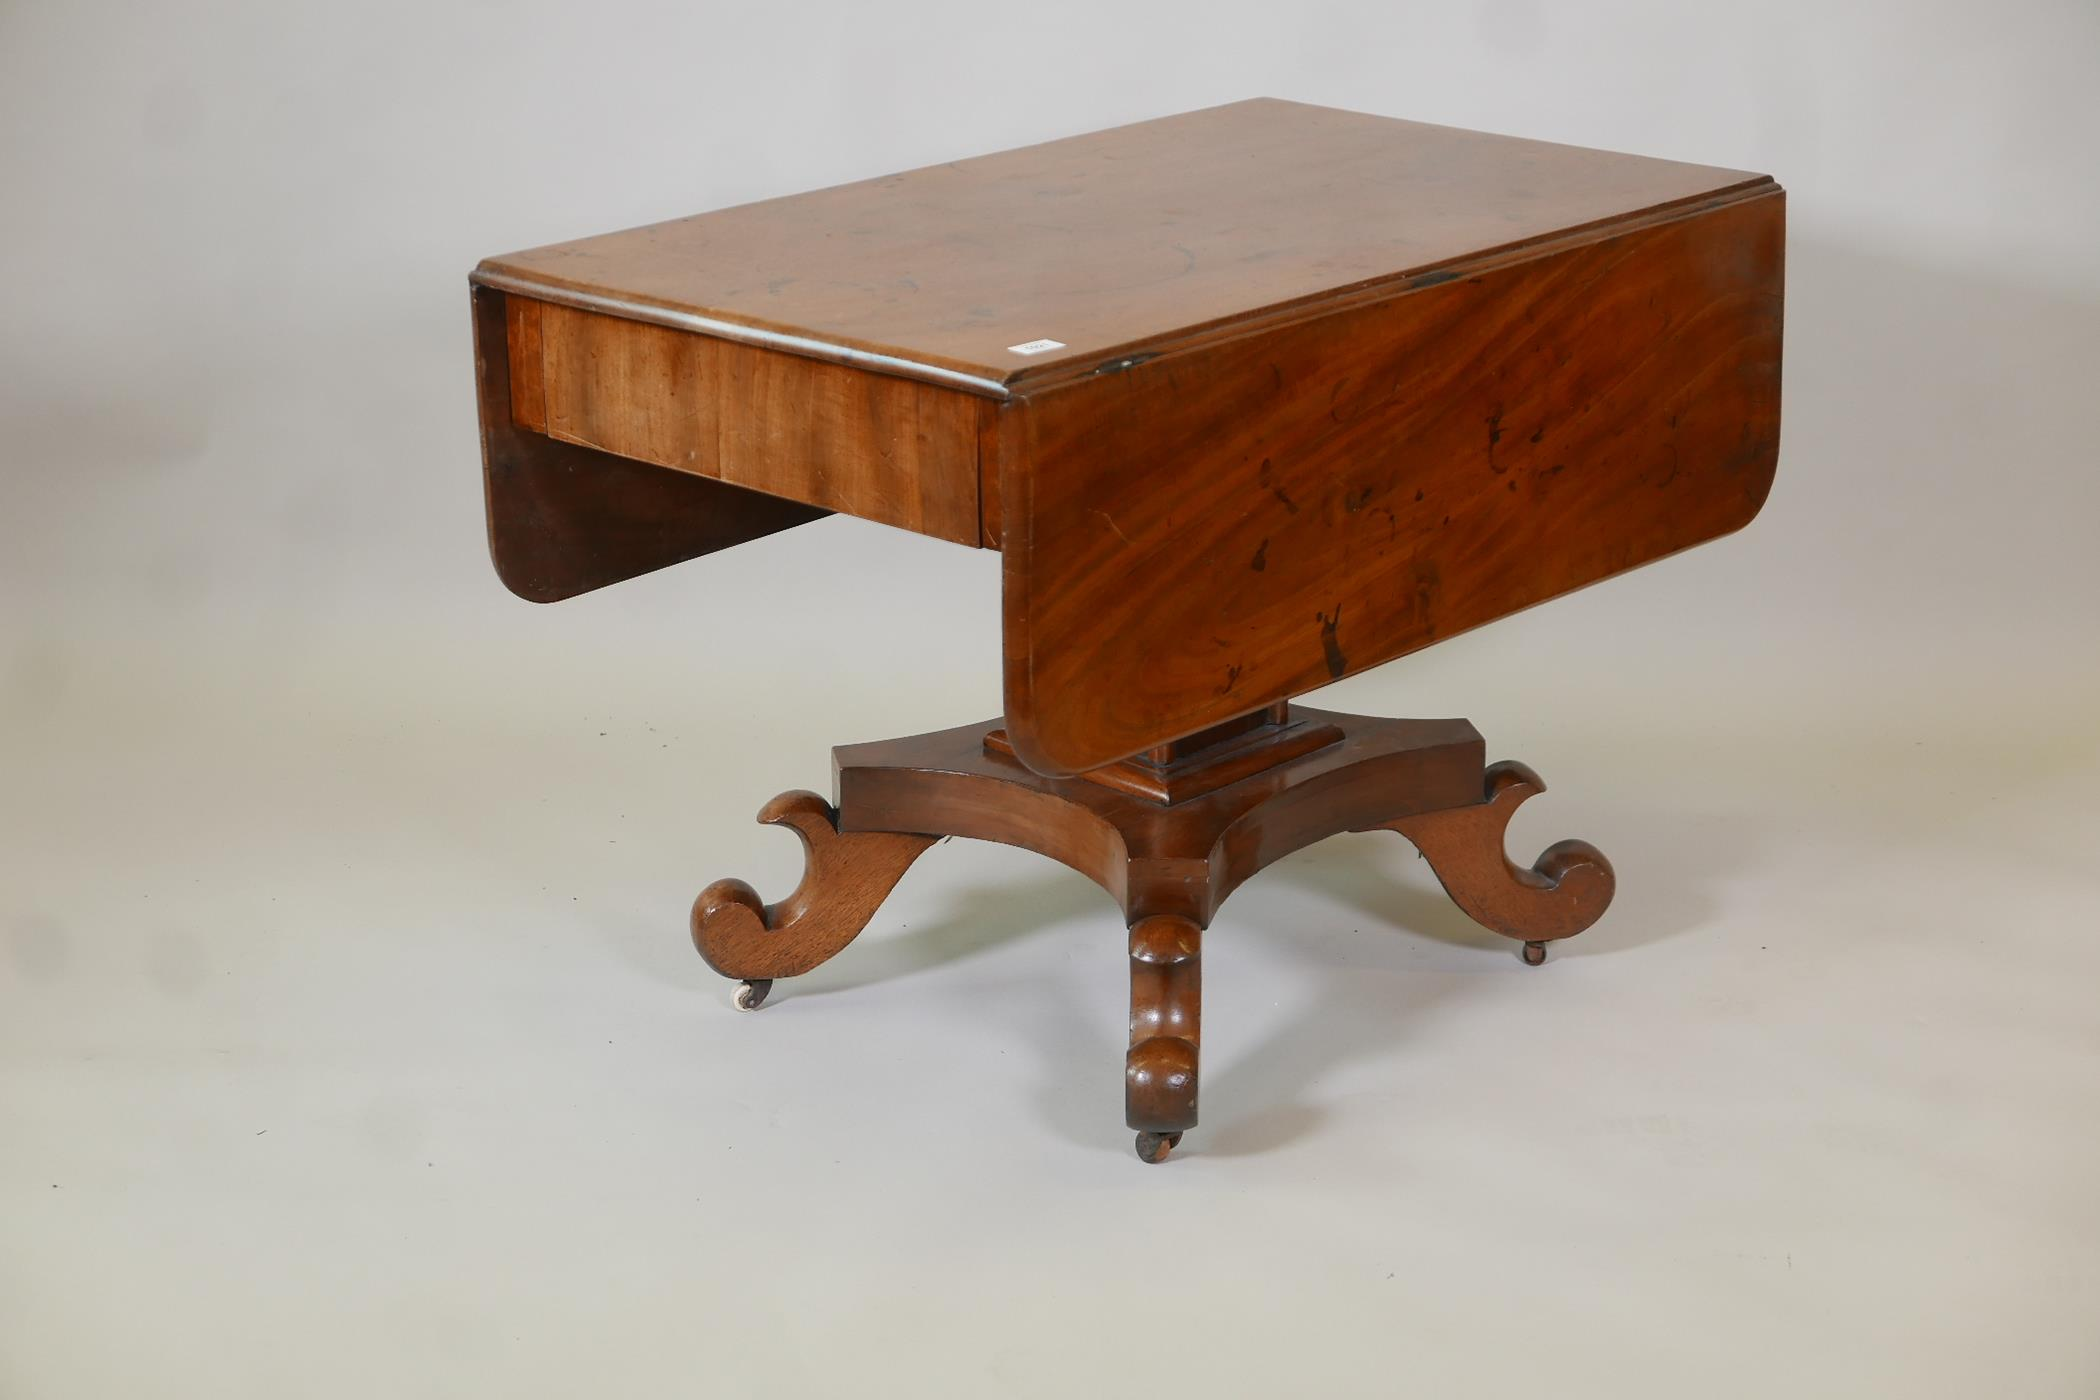 A C19th Continental mahogany sofa table with single end frieze drawer, raised on a square column and